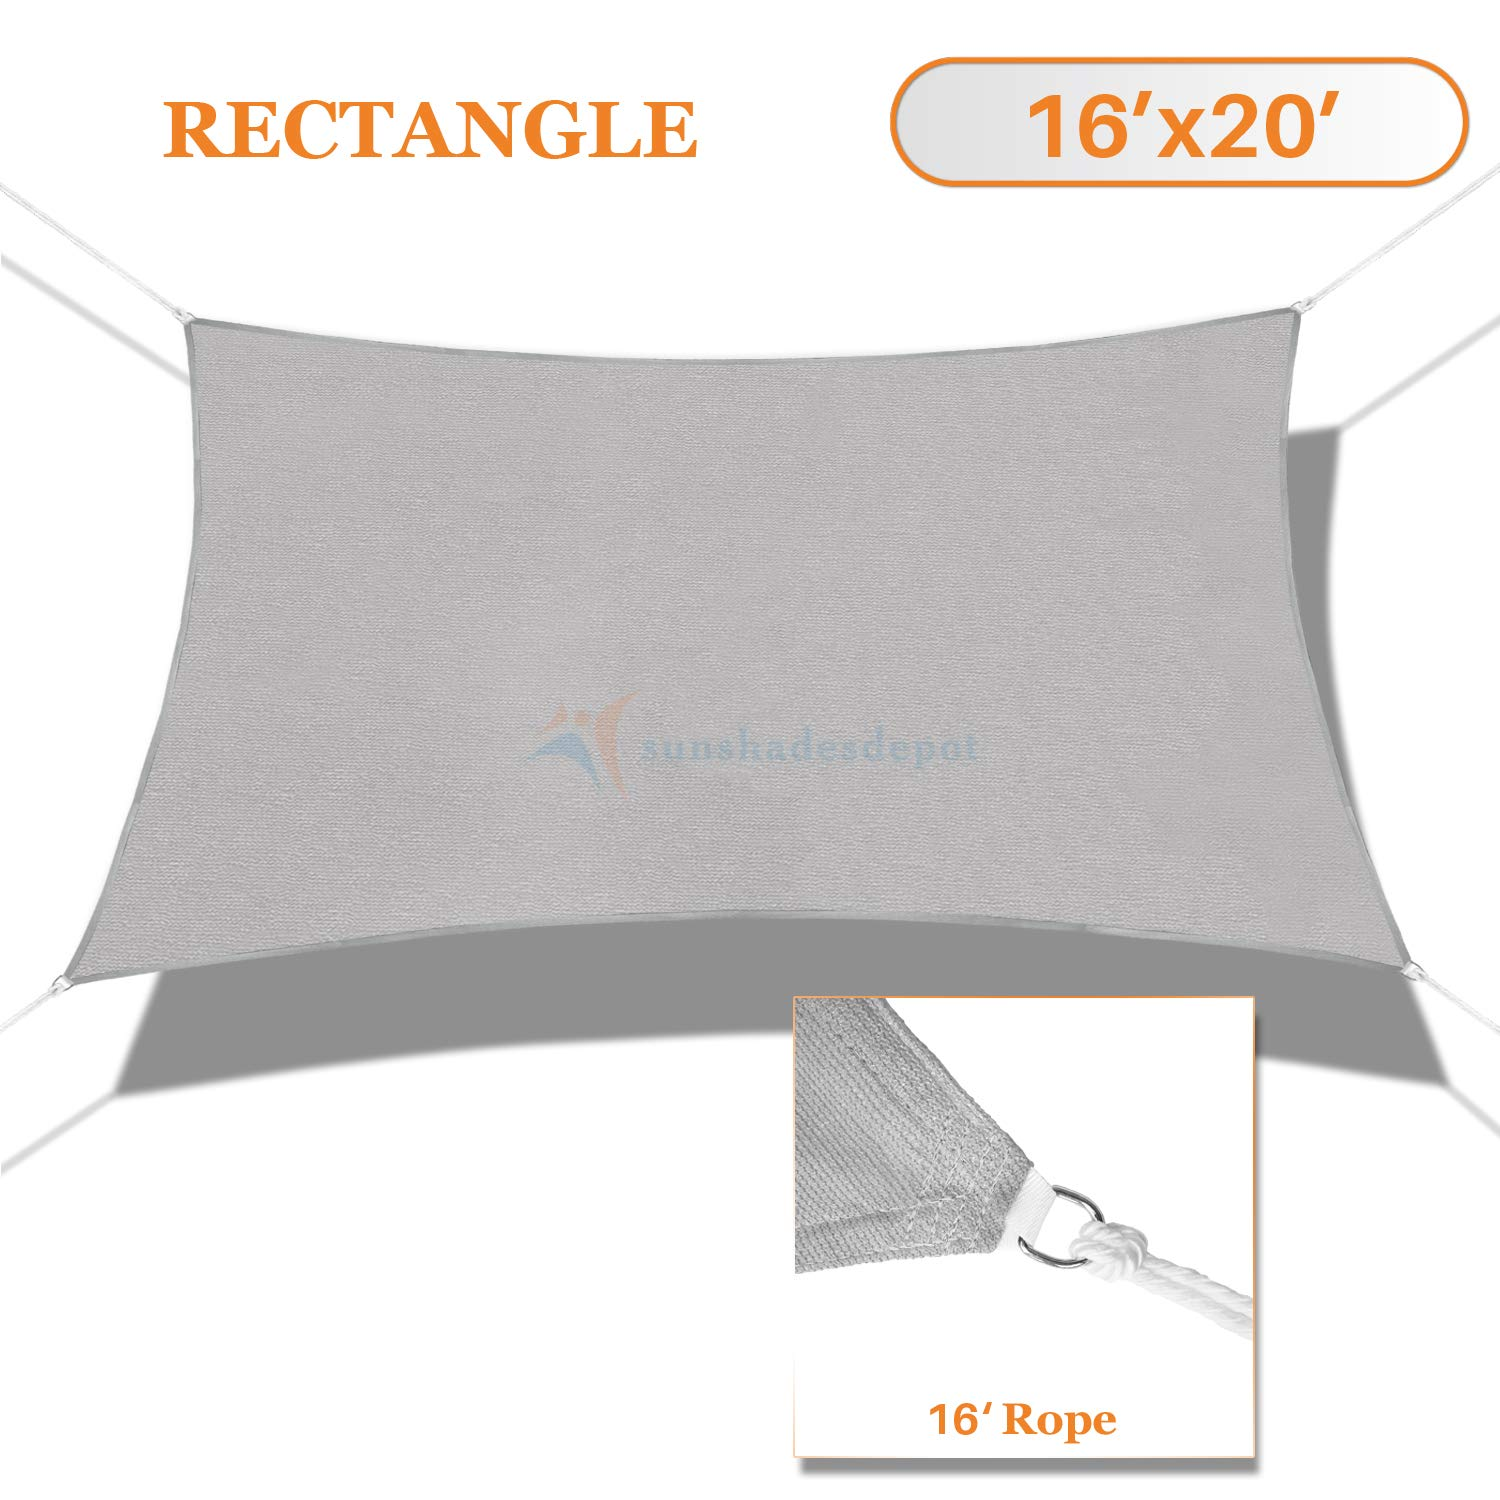 Sunshades Depot 16' x 20' Solid Light Grey Sun Shade Sail Rectangle Permeable Canopy Customize Commercial Standard 180 GSM HDPE